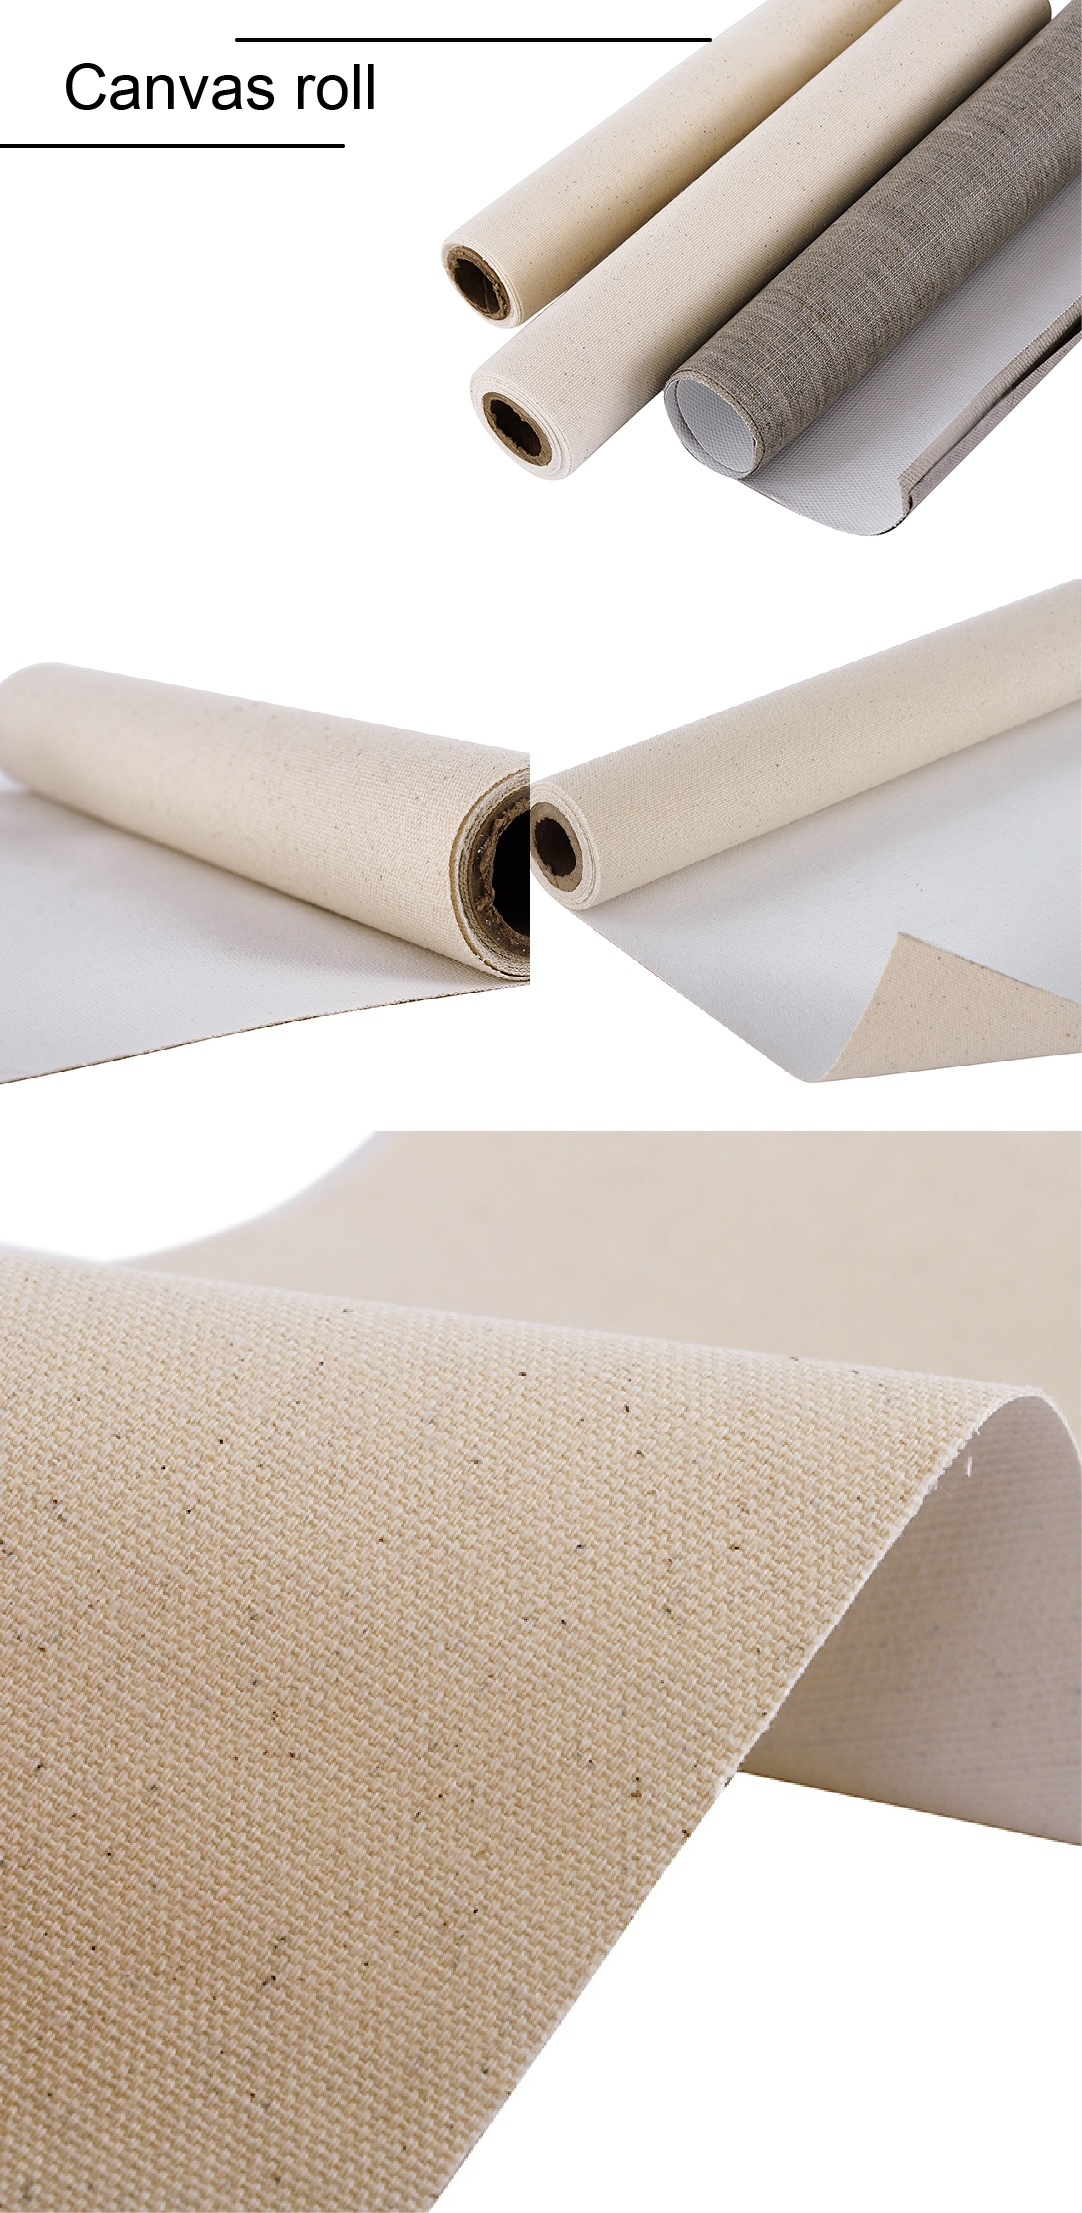 420g 45% Cotton&55% Linen Stretched Canvas Roll With Rough Texture